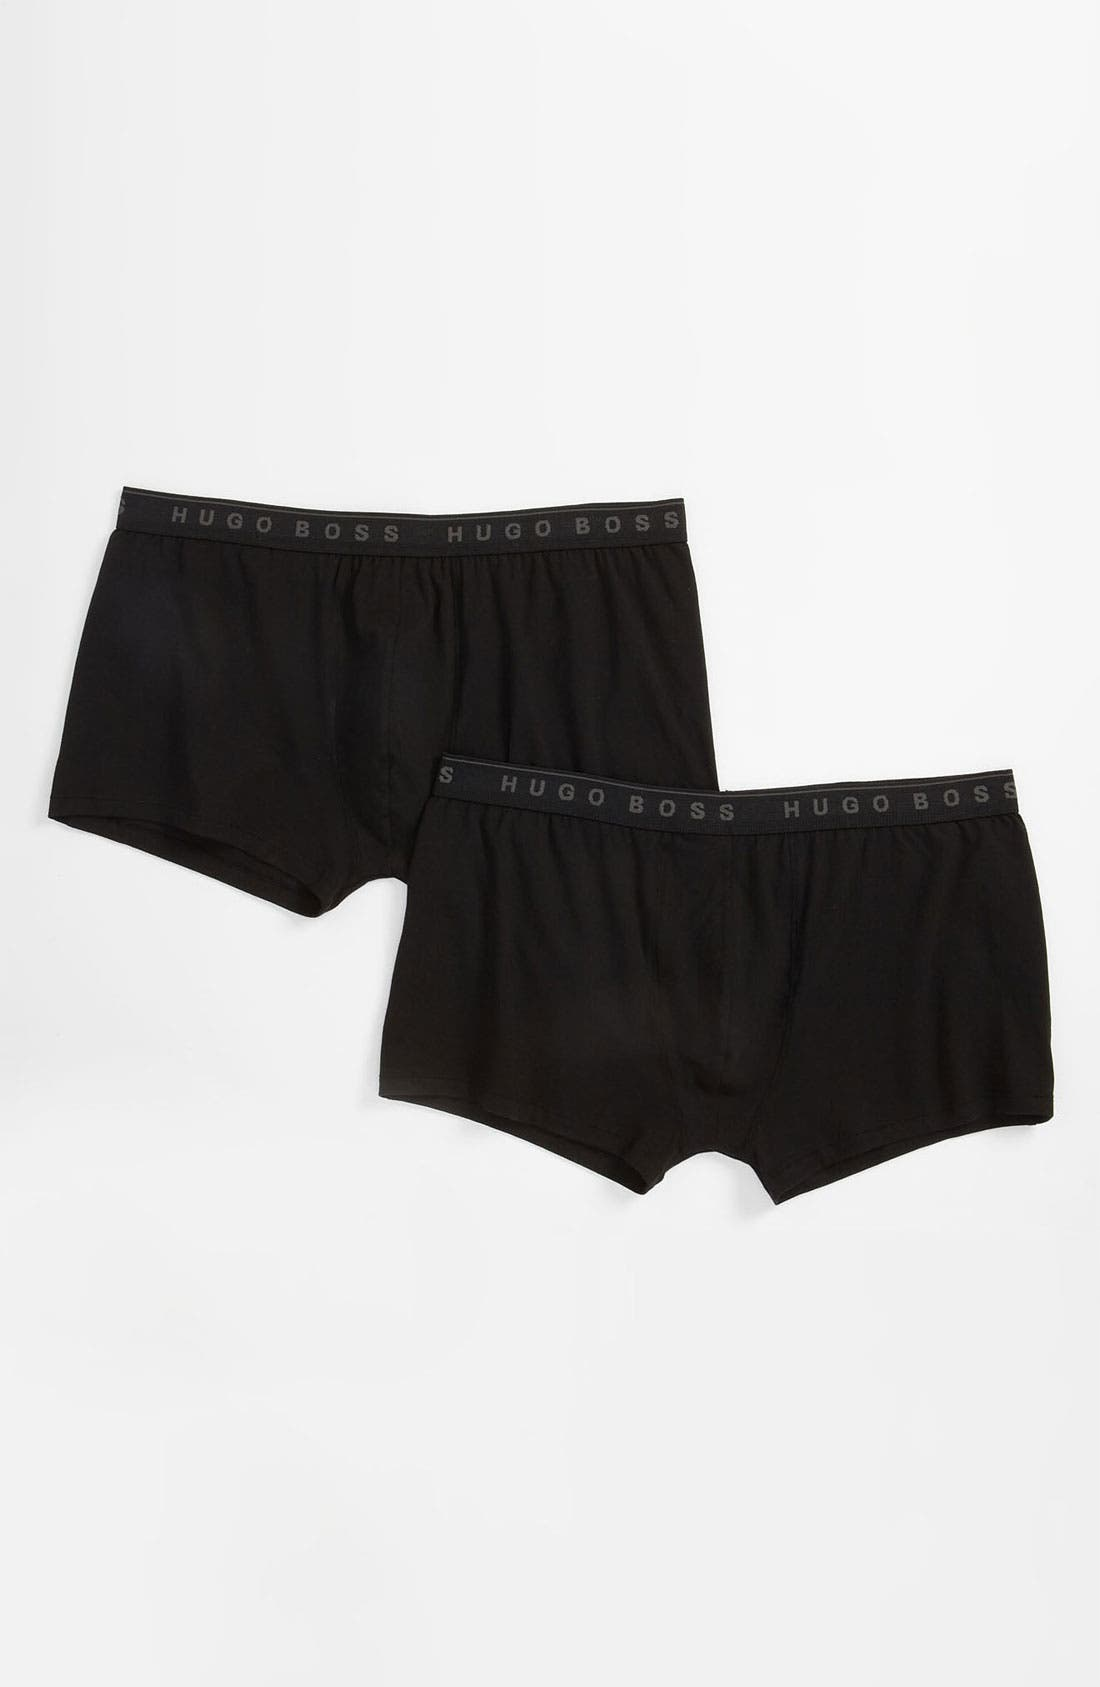 Alternate Image 1 Selected - BOSS Black Stretch Cotton Trunks (2-Pack) (Big) (Online Exclusive)